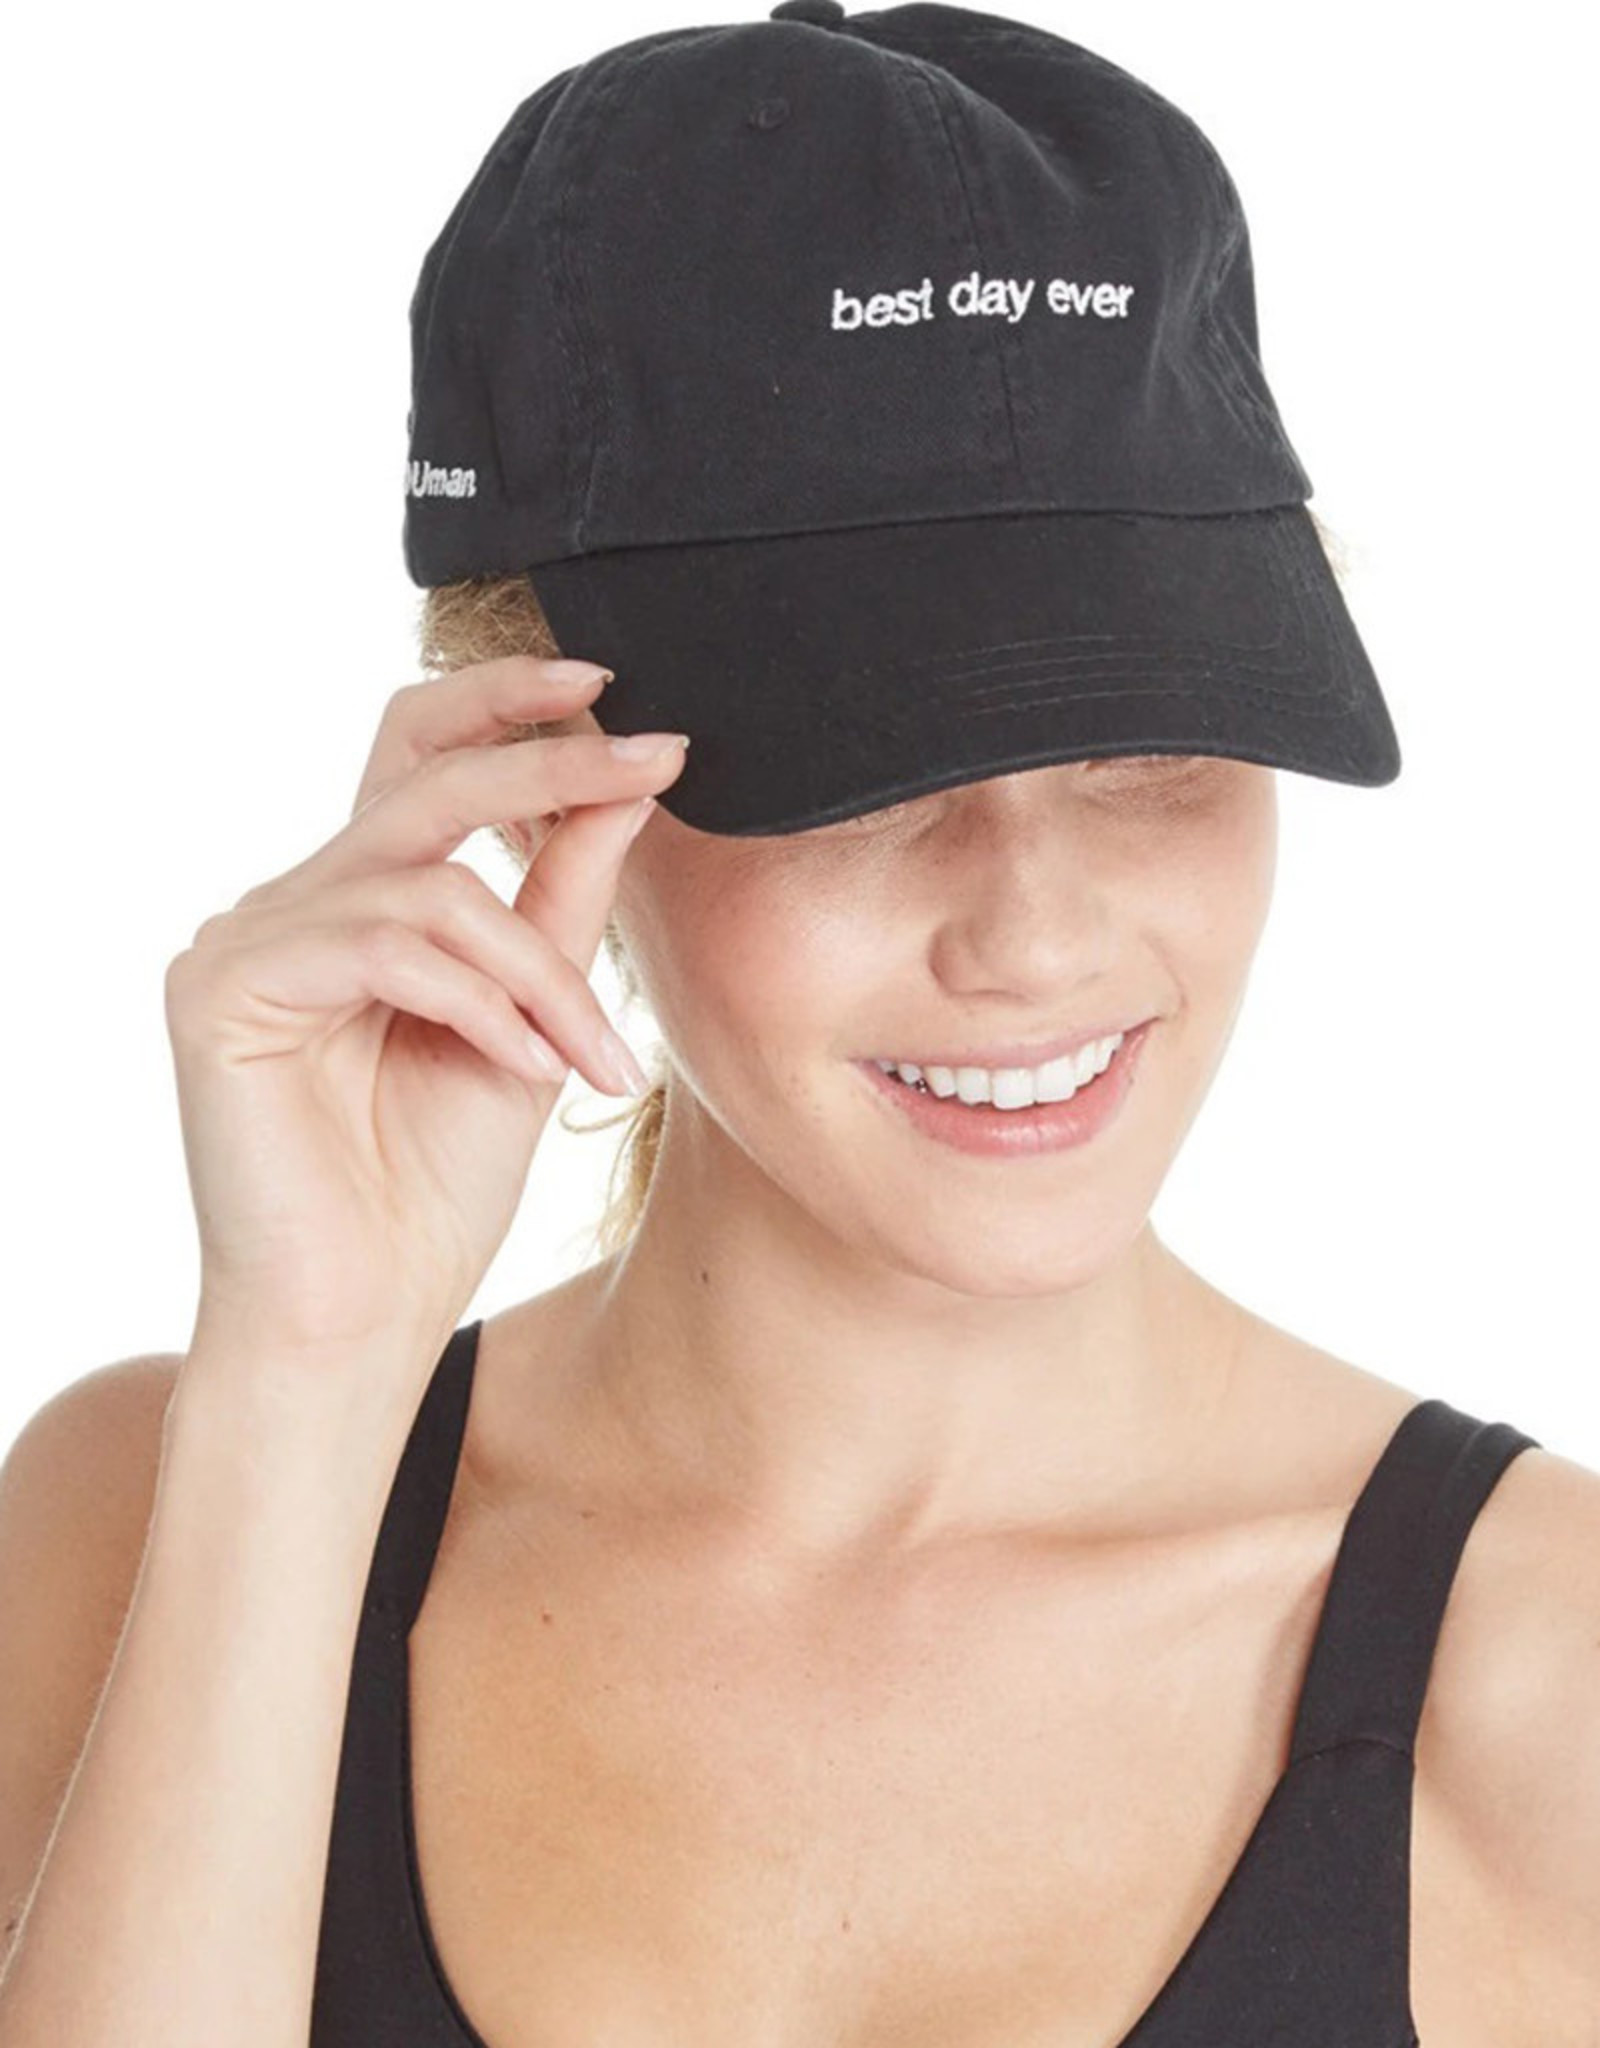 GOOD HYOUMAN BEST DAY EVER - DAD BASEBALL CAP